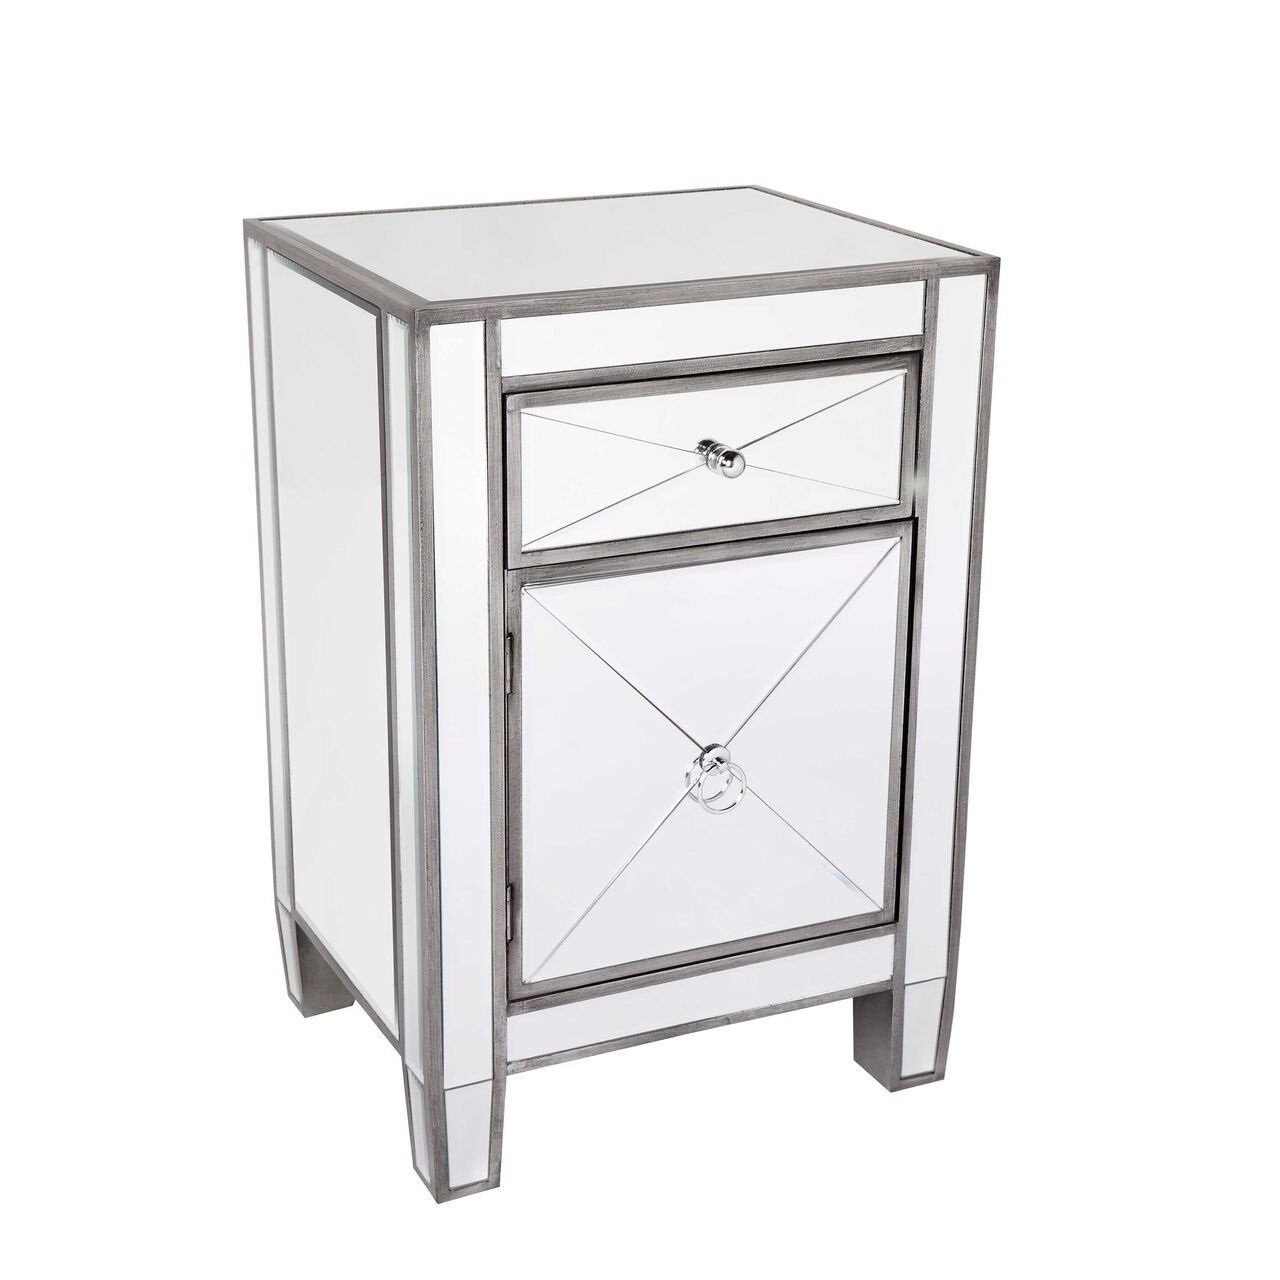 Apolo mirrored bedside table online furnitures the for Mirror bedside table